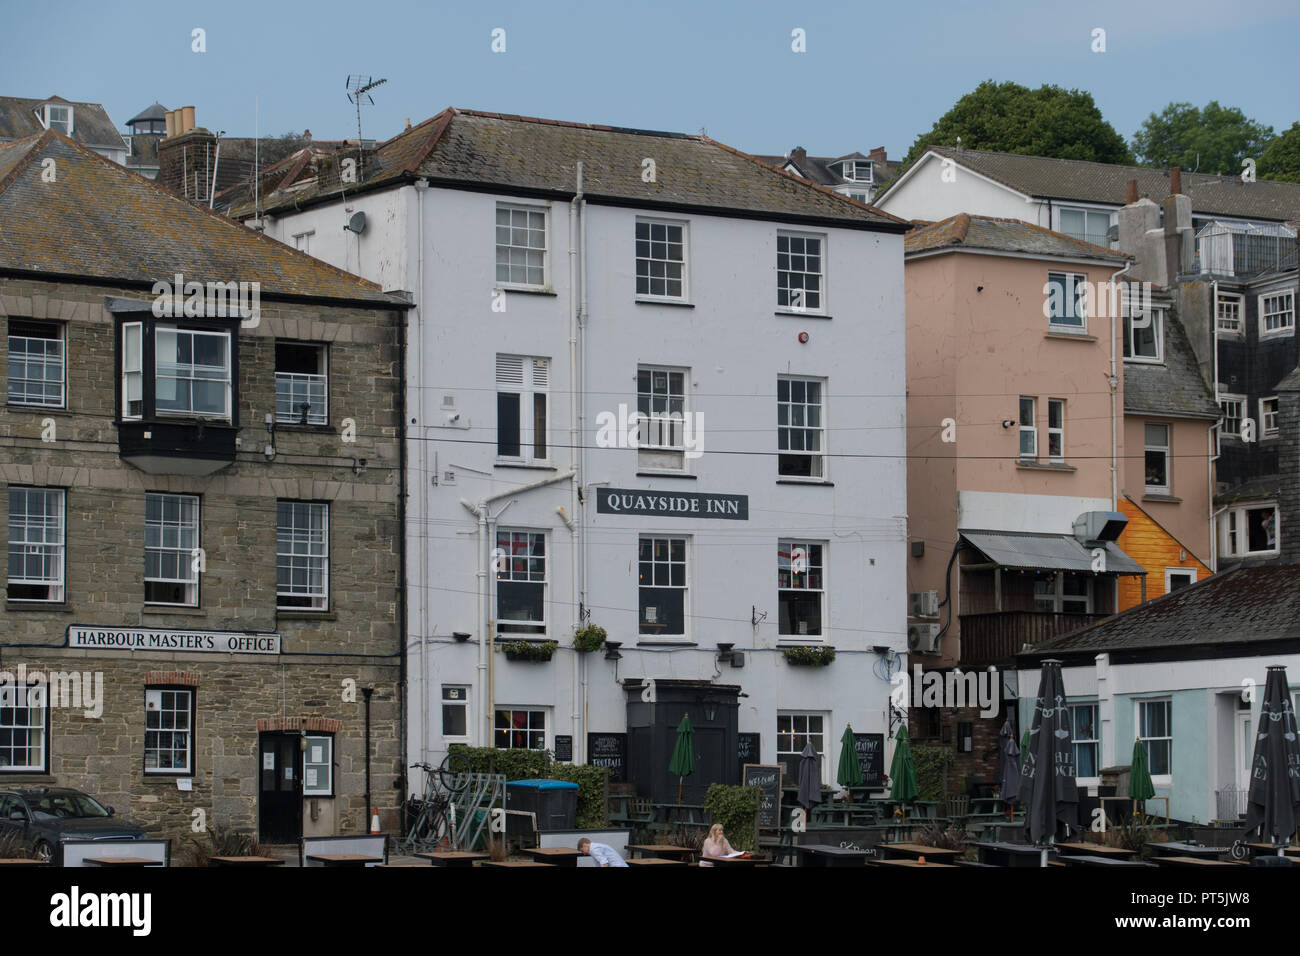 Quayside Inn at Falmouth - Stock Image